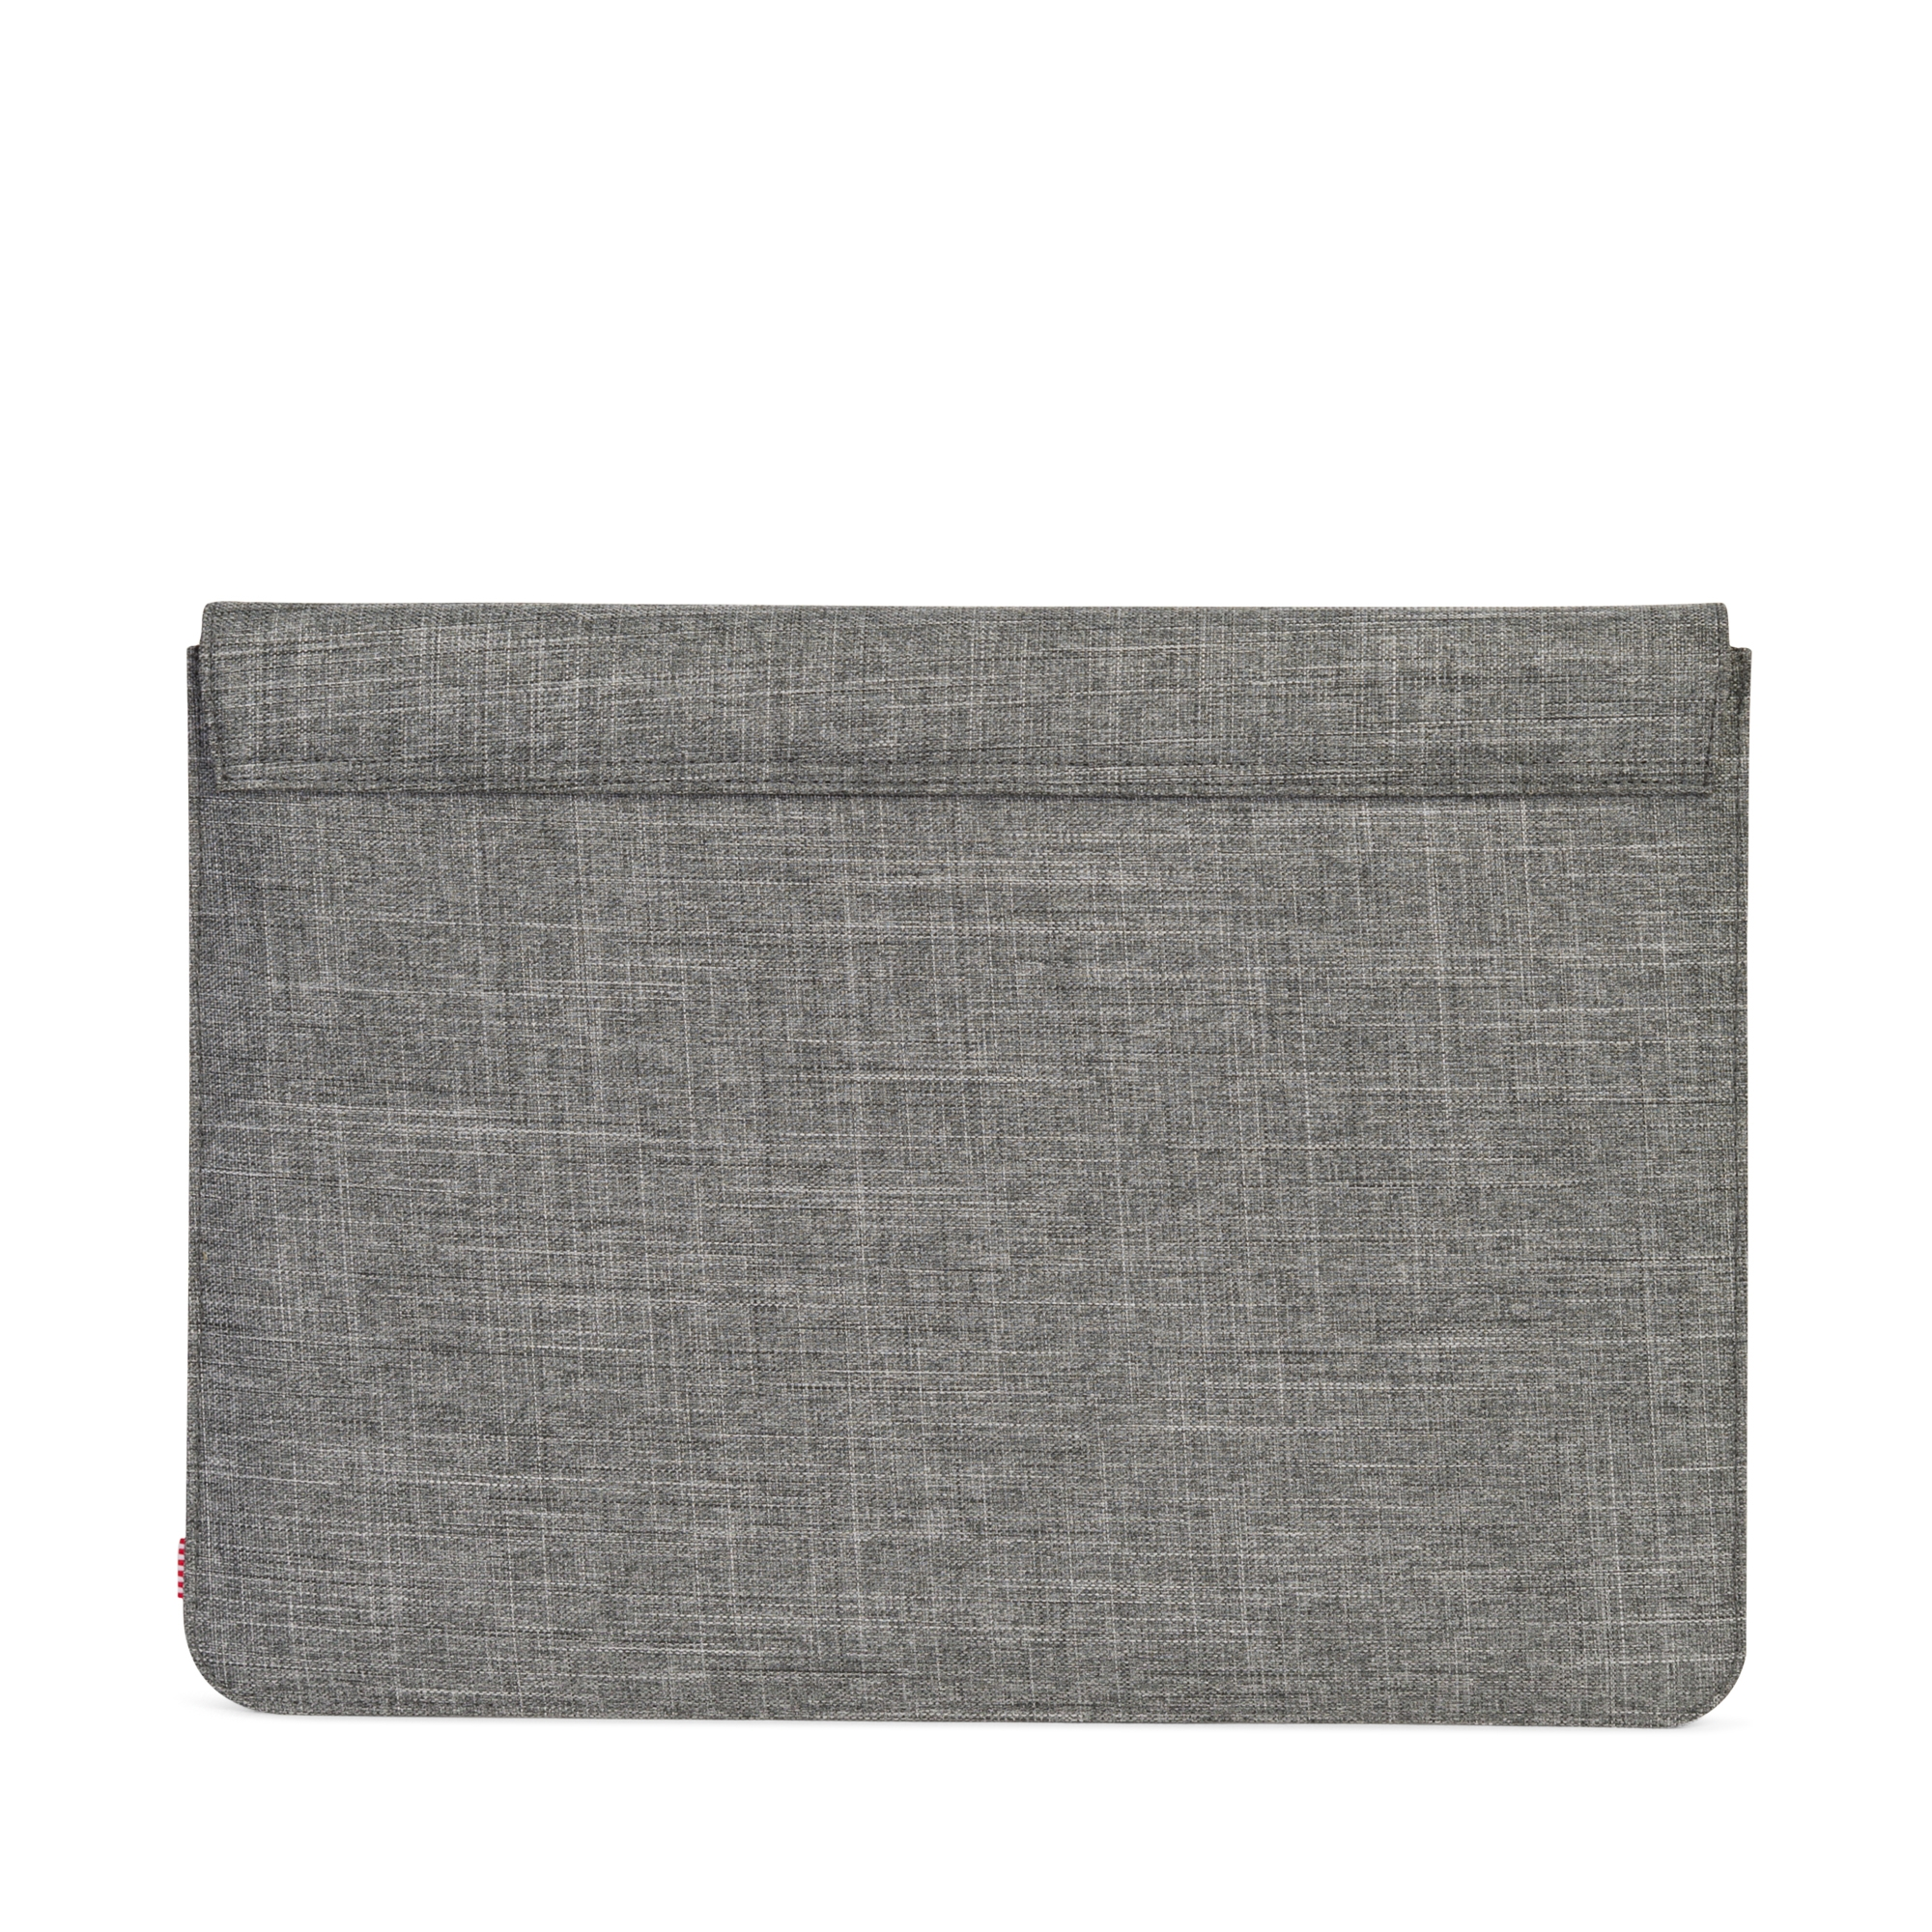 "Herschel Spokane Sleeve for 15"" Macbook Raven Crosshatch-156212"